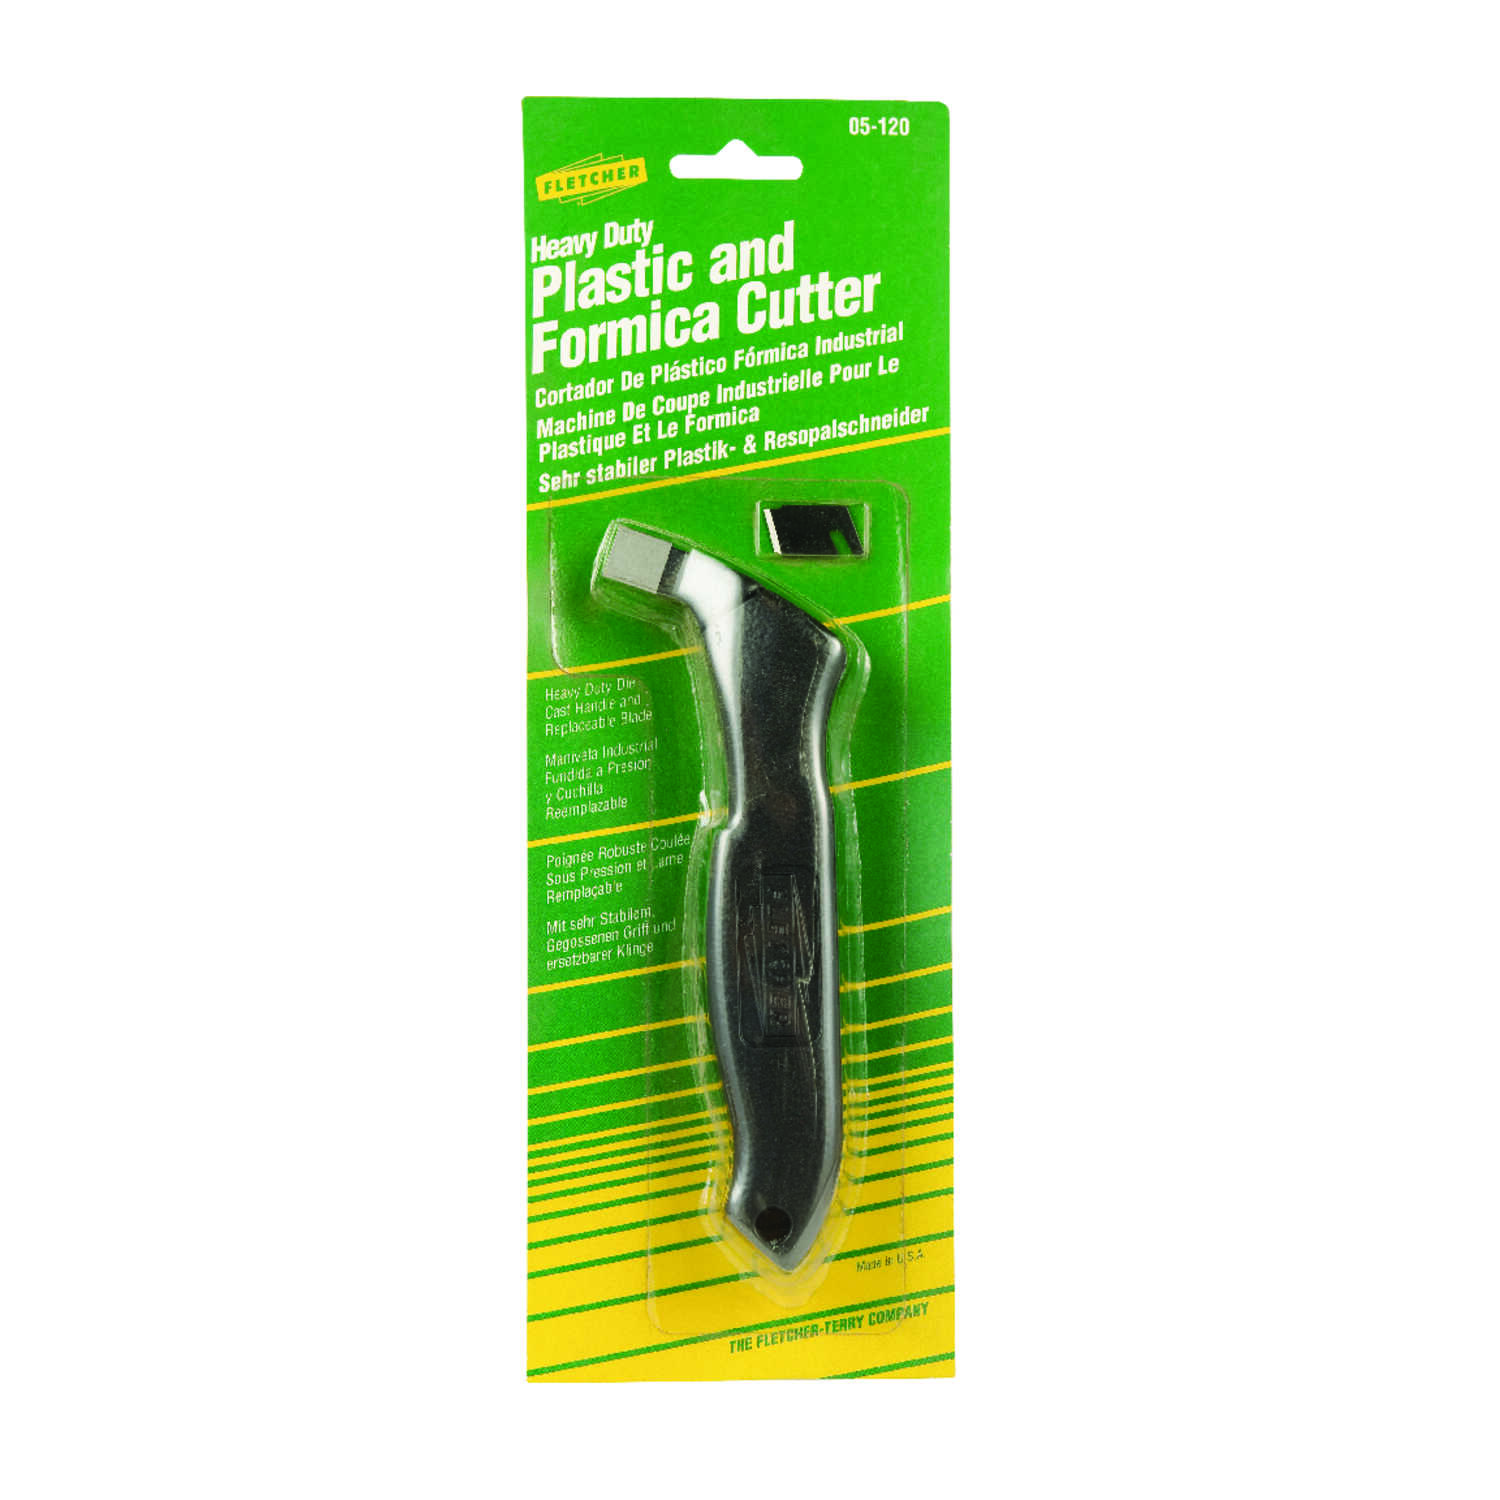 Fletcher  Plastic and Formica  4 in. Fixed Blade  Cutter  Black  1 pk